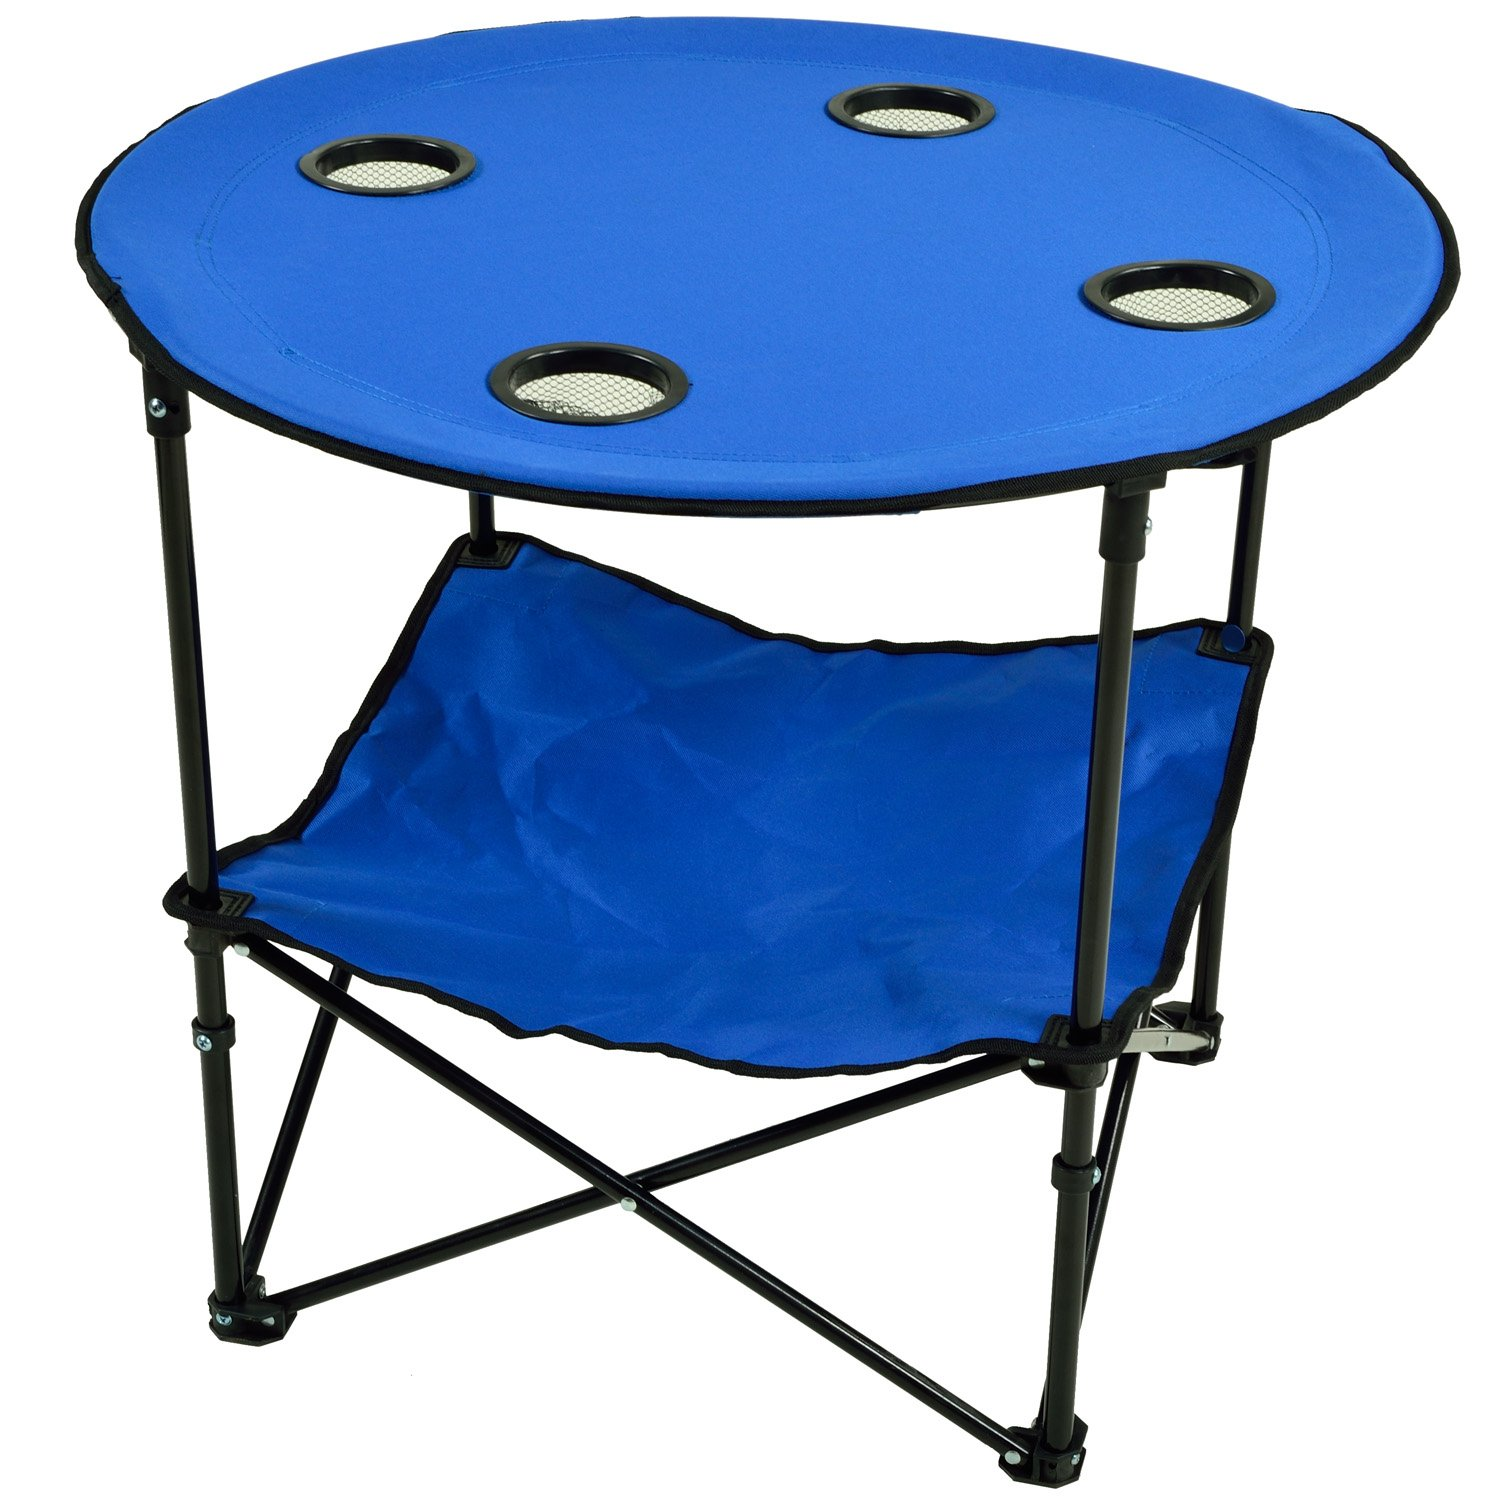 Picnic at Ascot Travel Folding Table For Picnics And Tailgating, Royal Blue